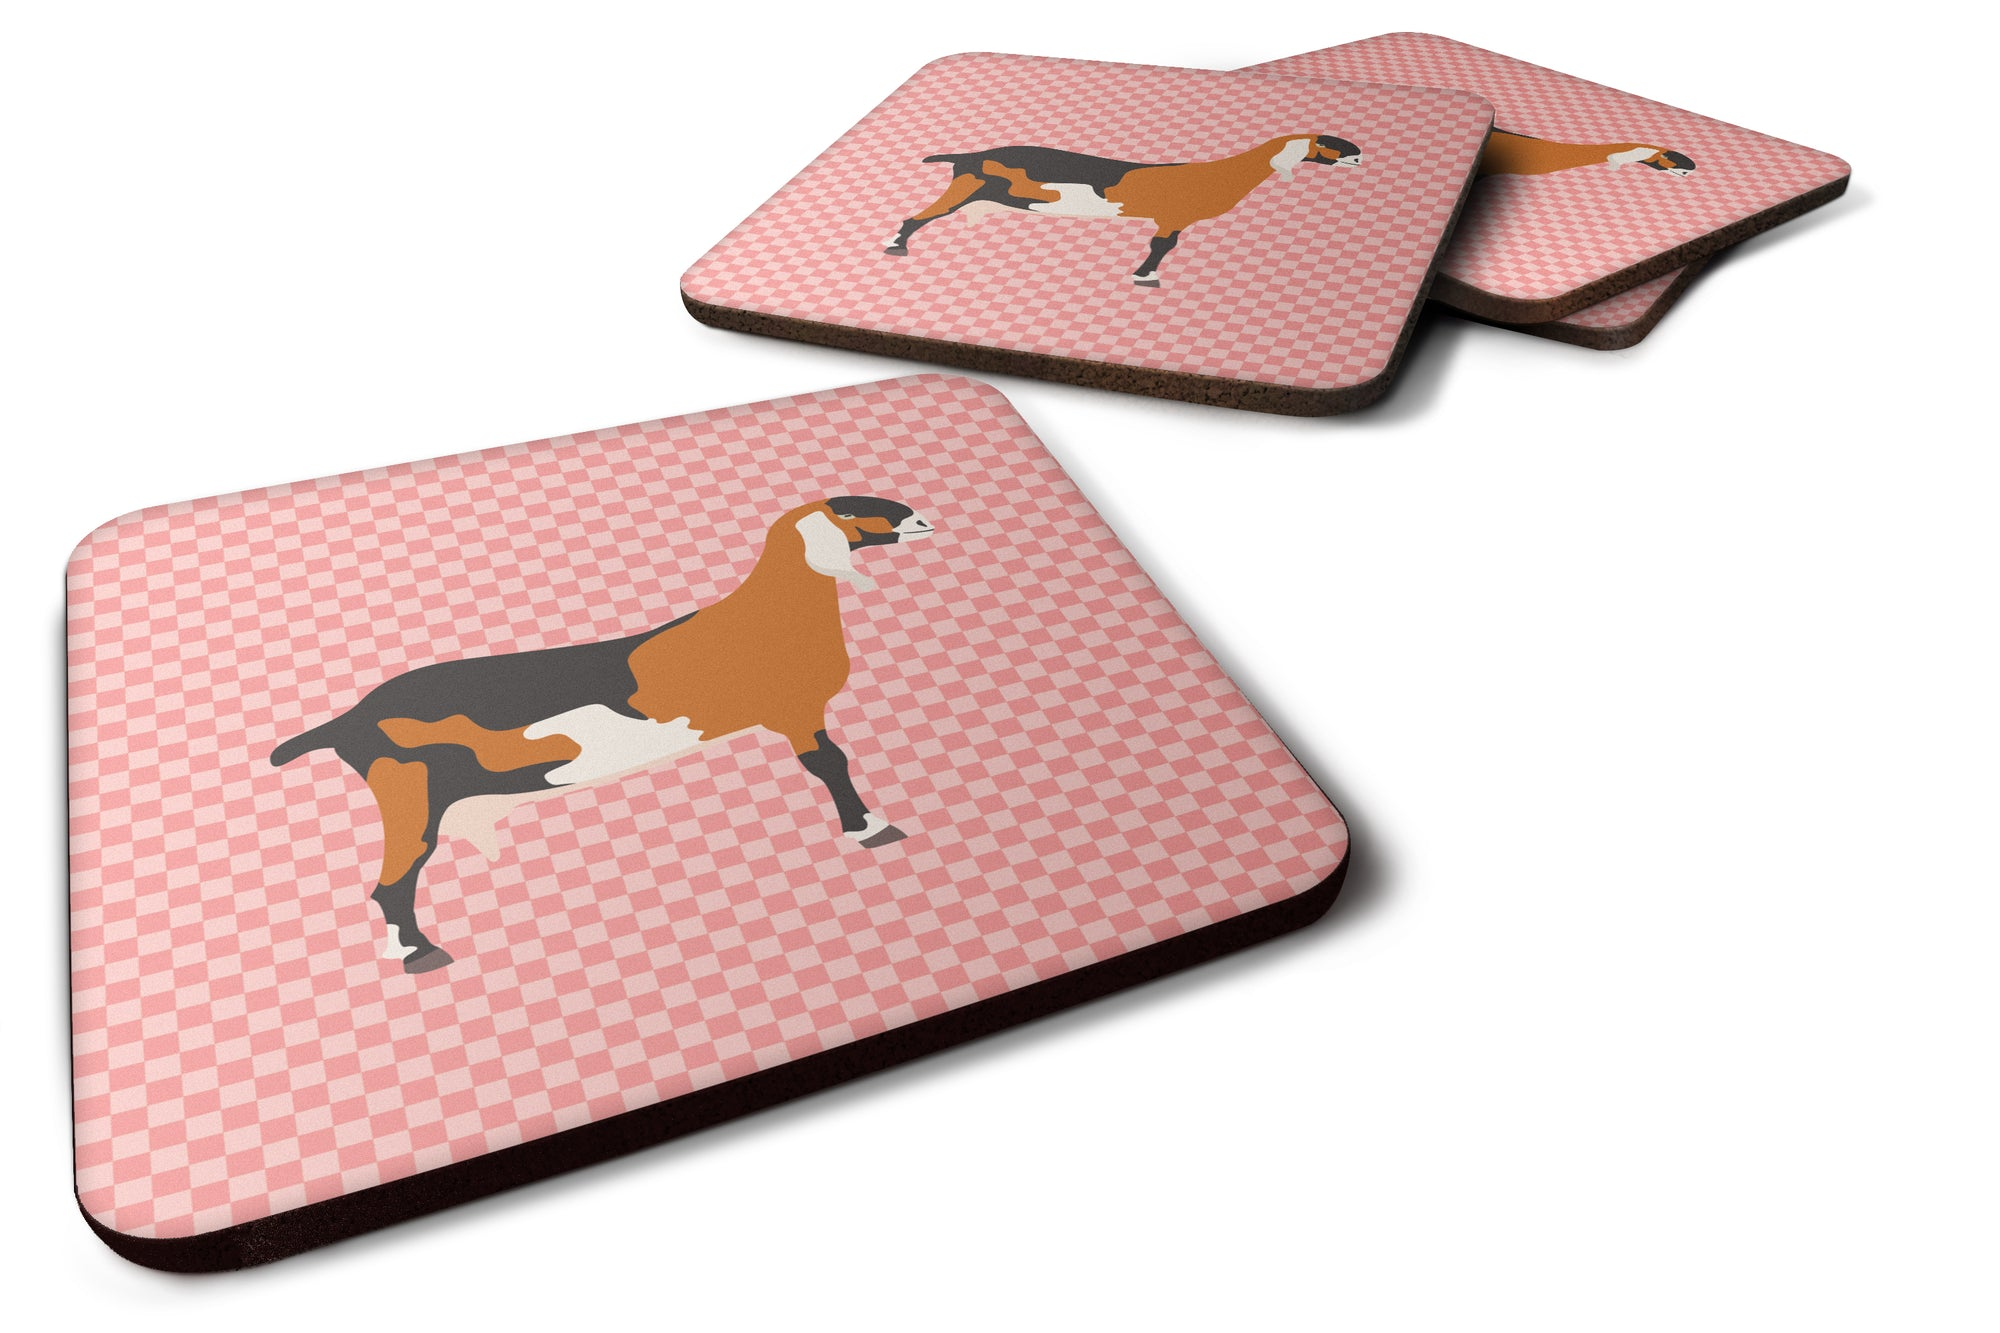 Anglo-nubian Nubian Goat Pink Check Foam Coaster Set of 4 BB7883FC by Caroline's Treasures